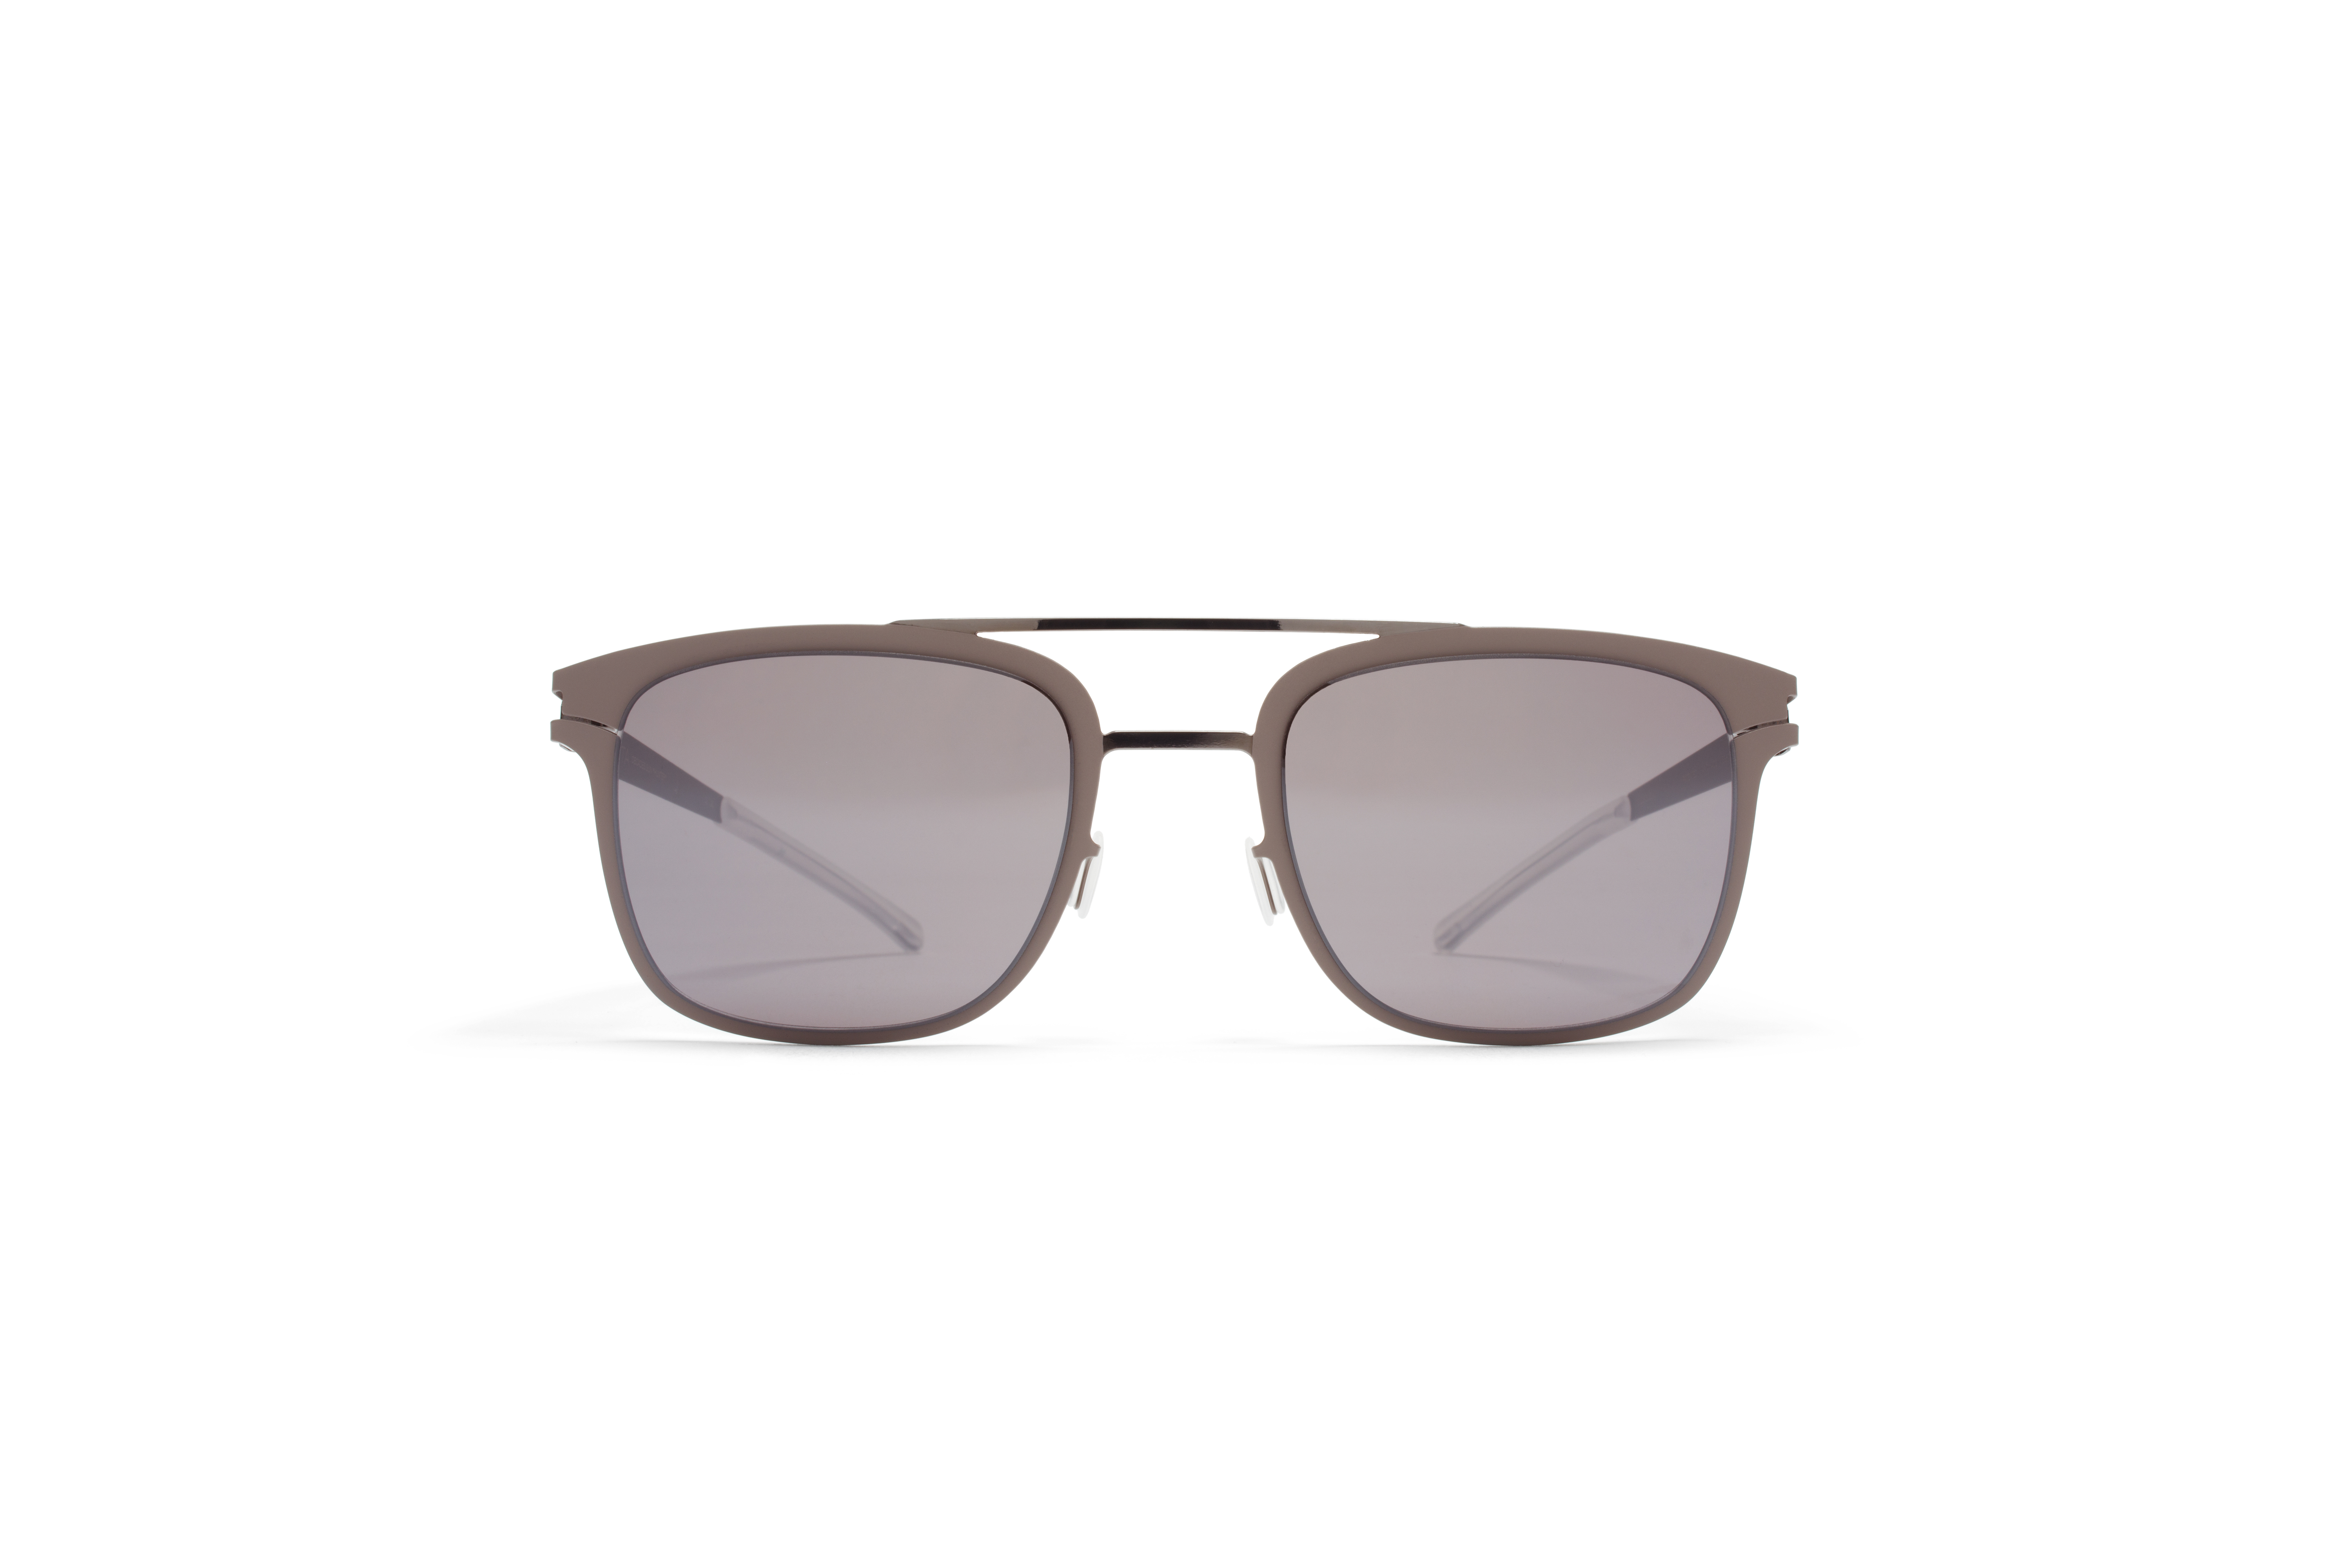 MYKITA Decades Sun Hunter Shinygraphite Molegr Dar562b3e49a492e